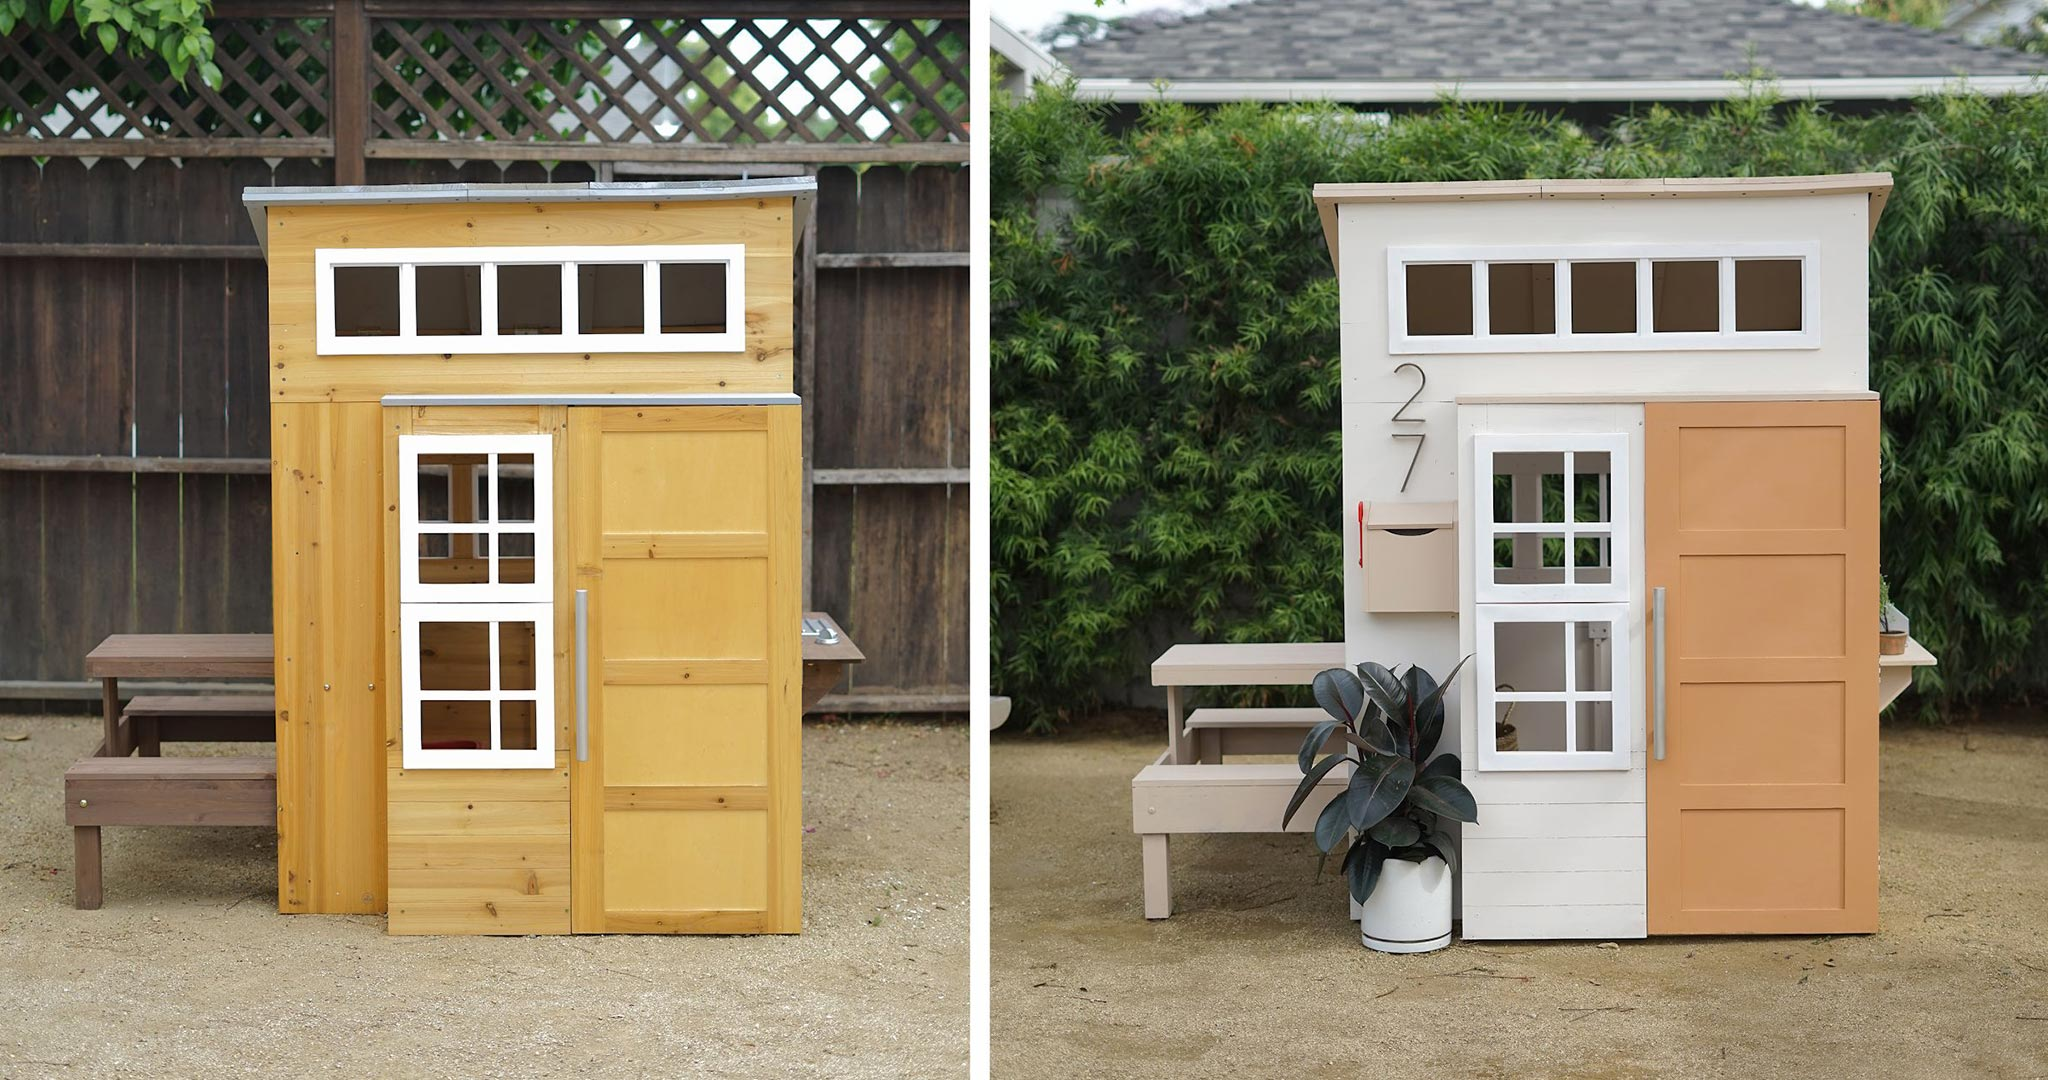 Playhouse before and after paint project images